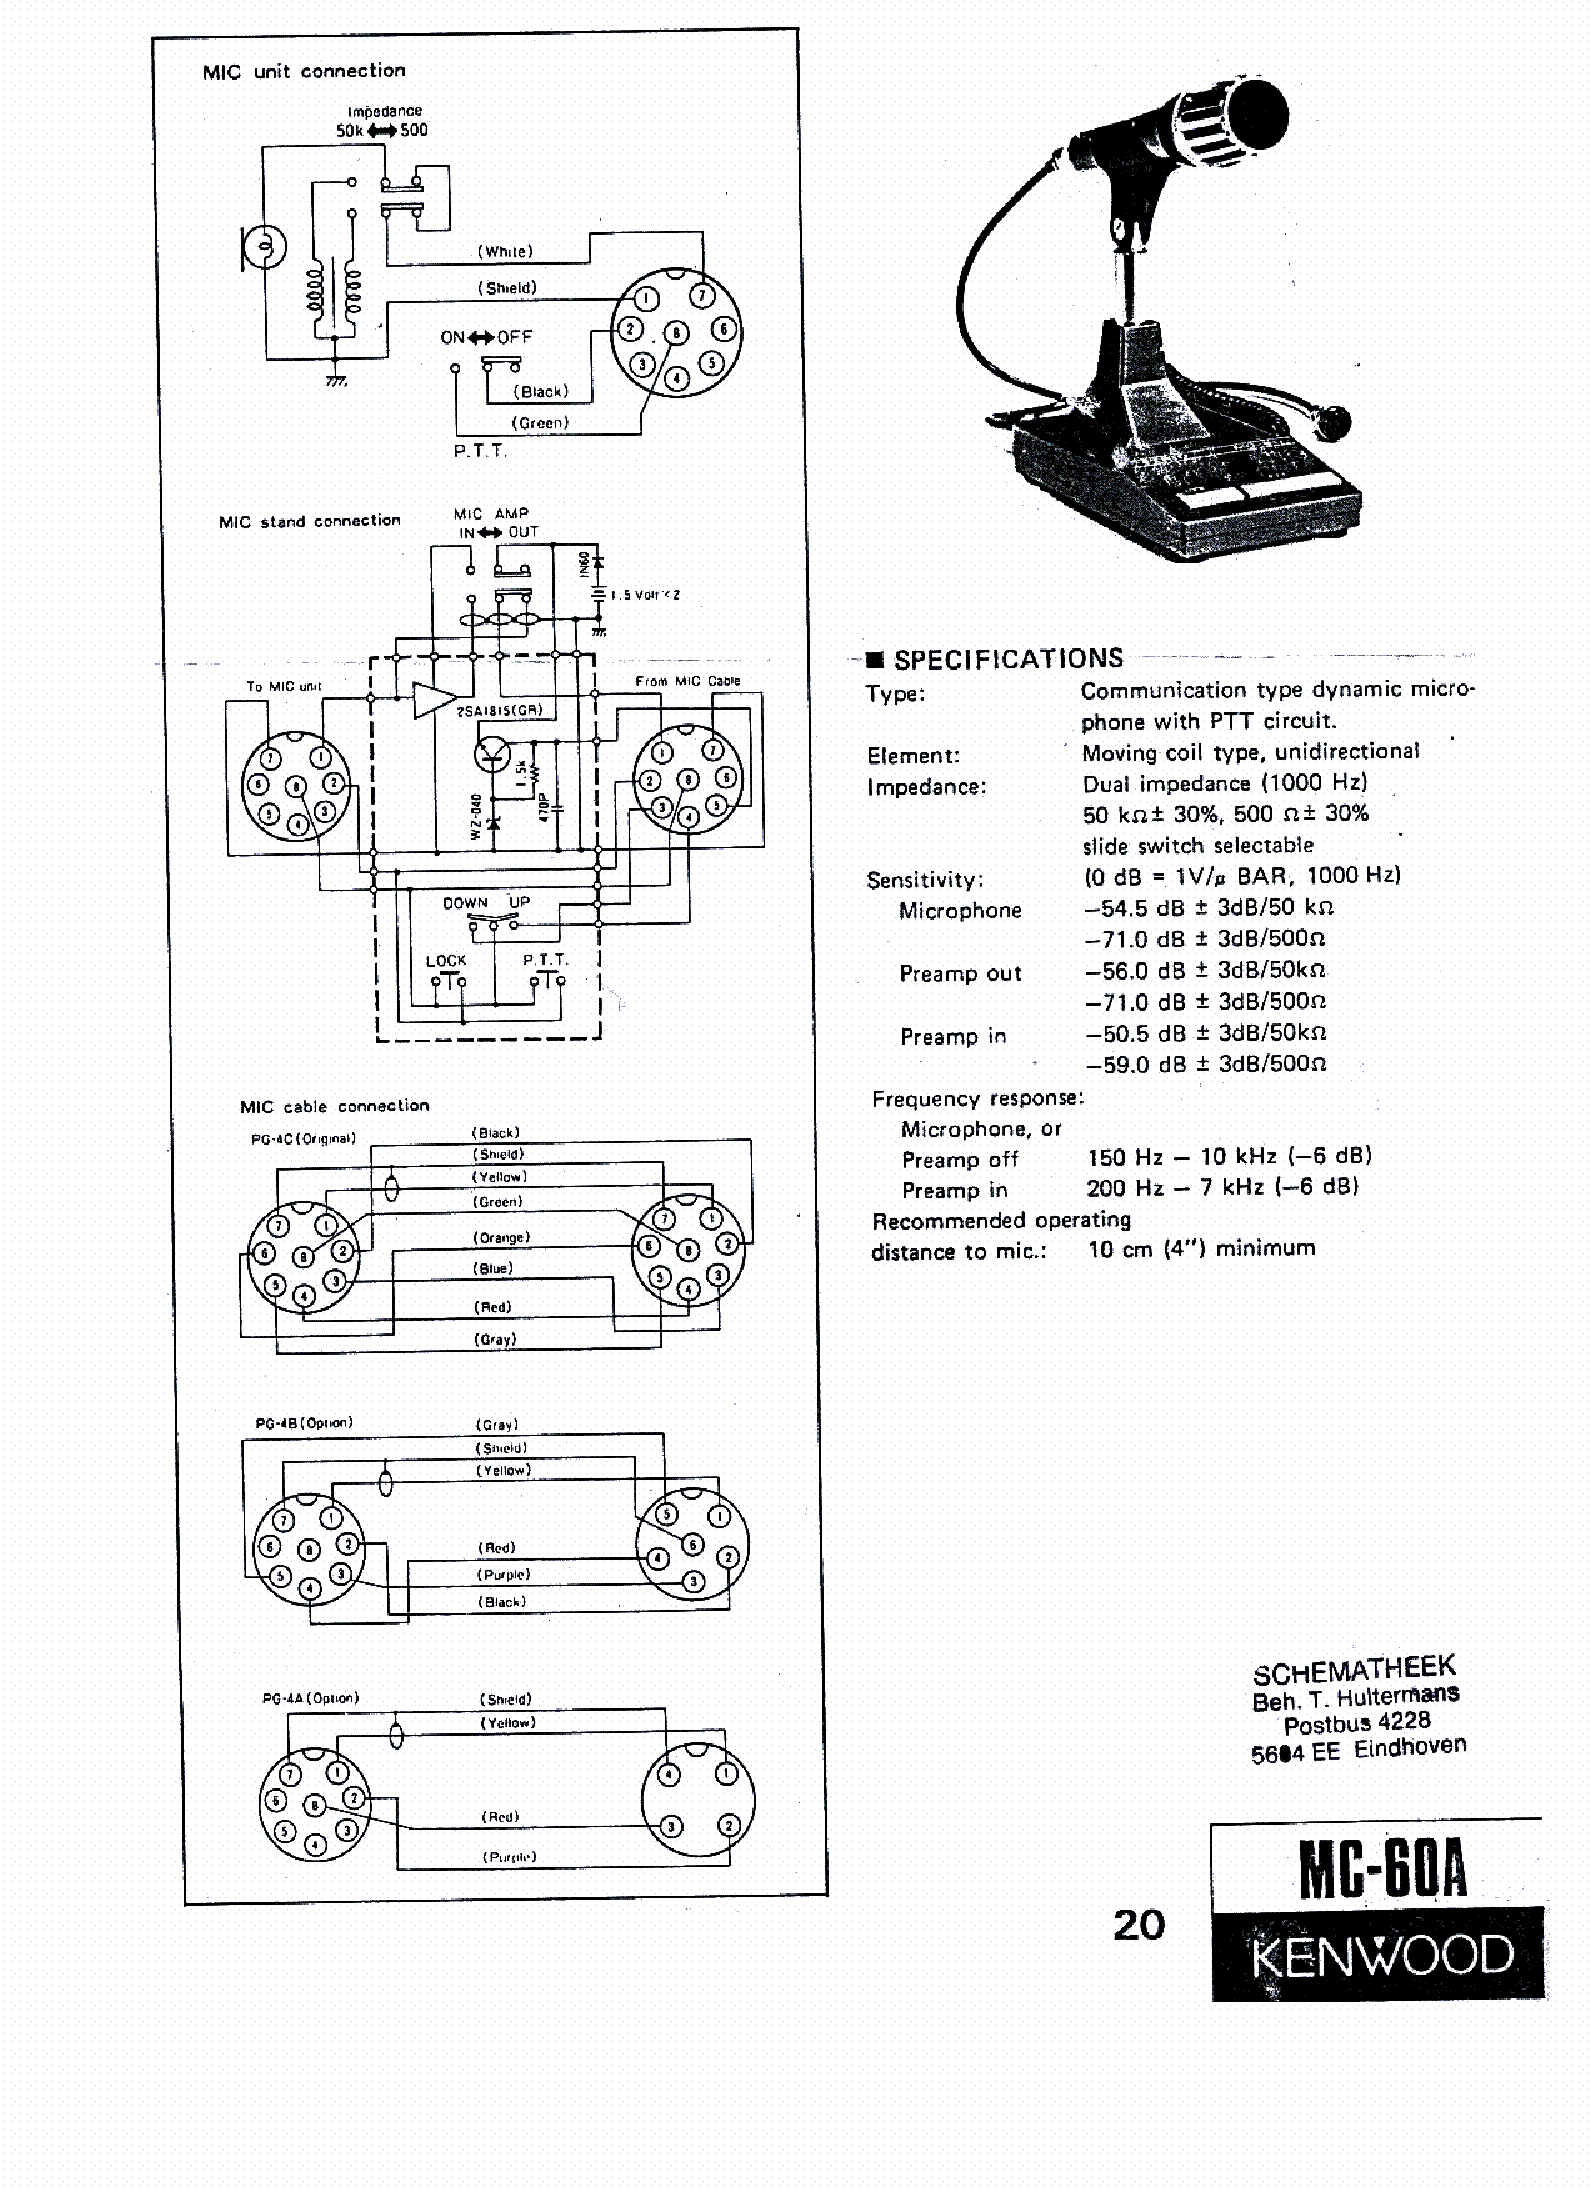 Kenwood Mc 60a Sch Service Manual Download Schematics Eeprom Repair Info For Electronics Experts